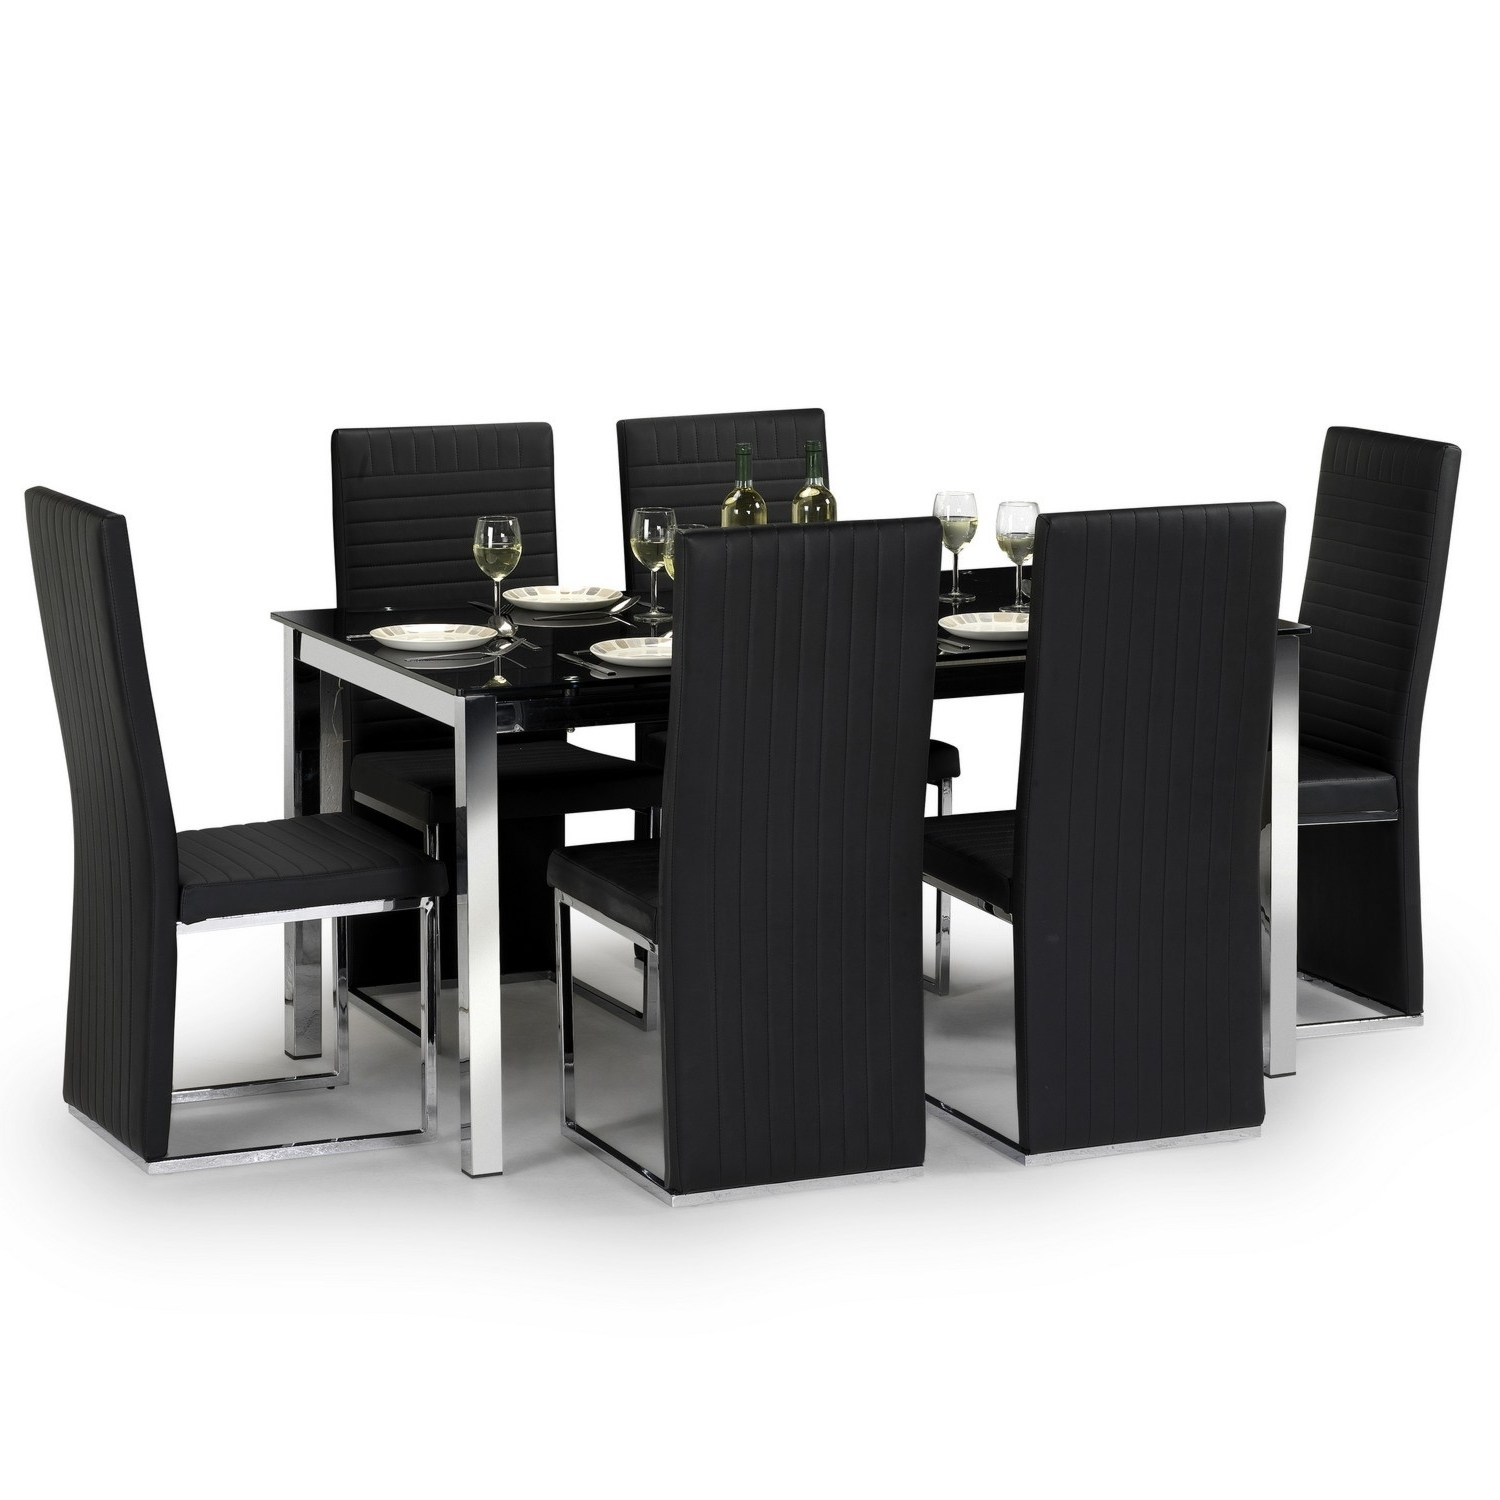 Fashionable Tempo Dining Table And 6 Chairs Pertaining To 6 Chair Dining Table Sets (View 11 of 25)